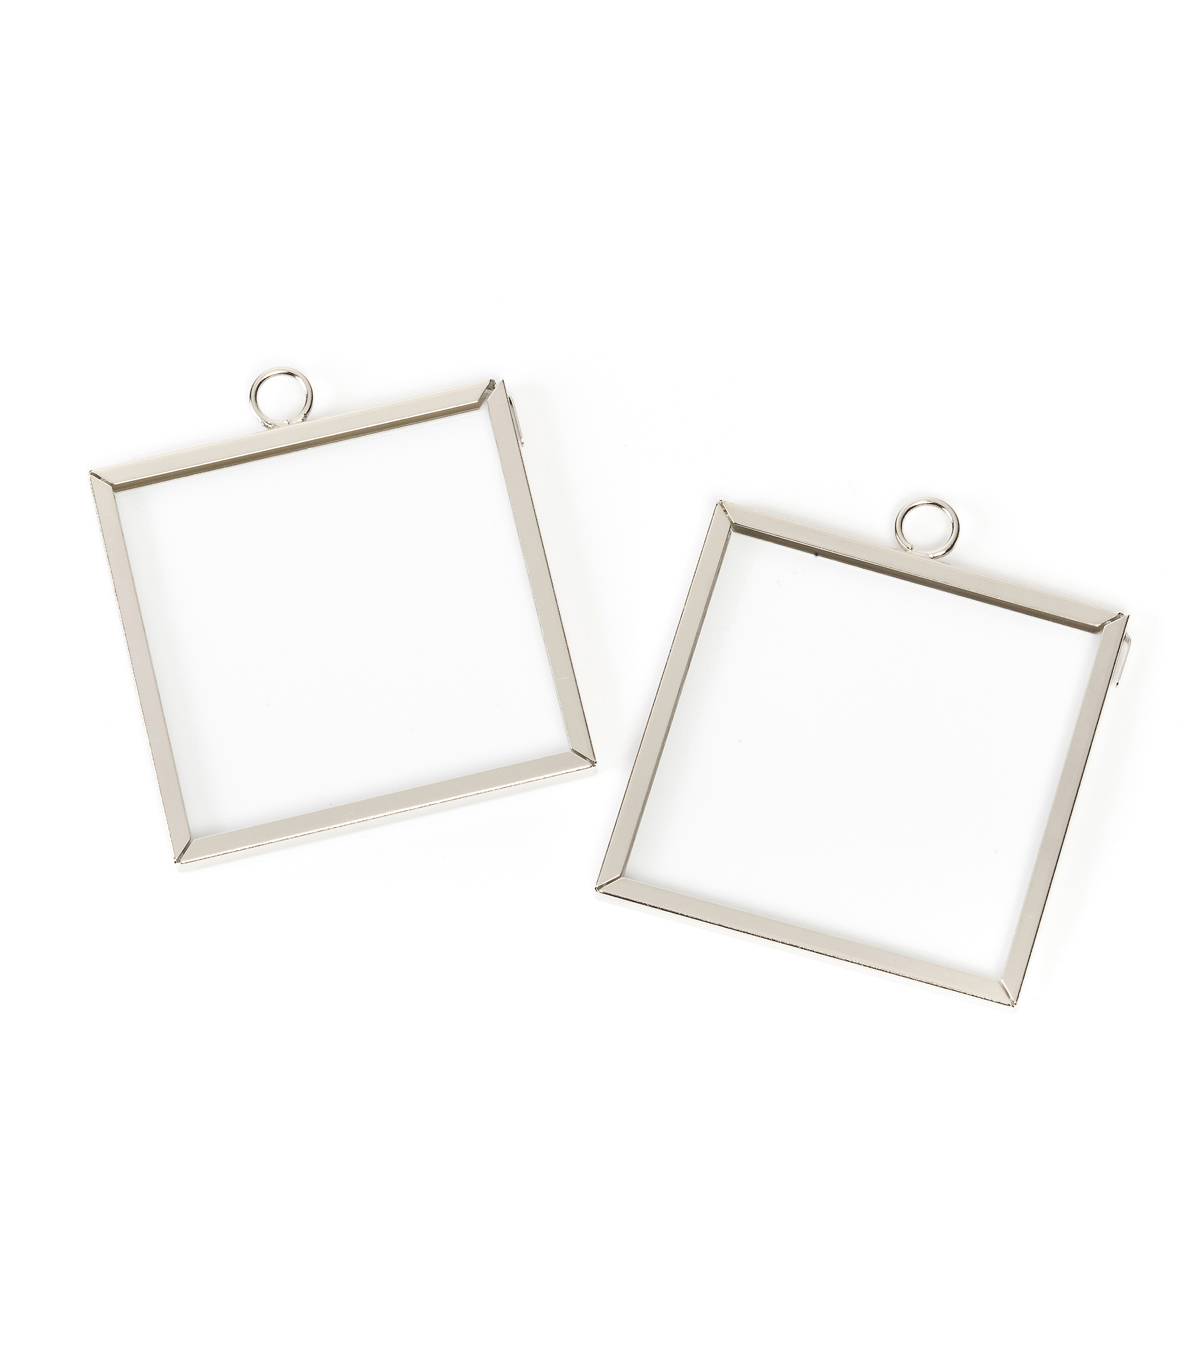 mini frame charm square silver 2 x 2 inches 2pcs - Mini Frame